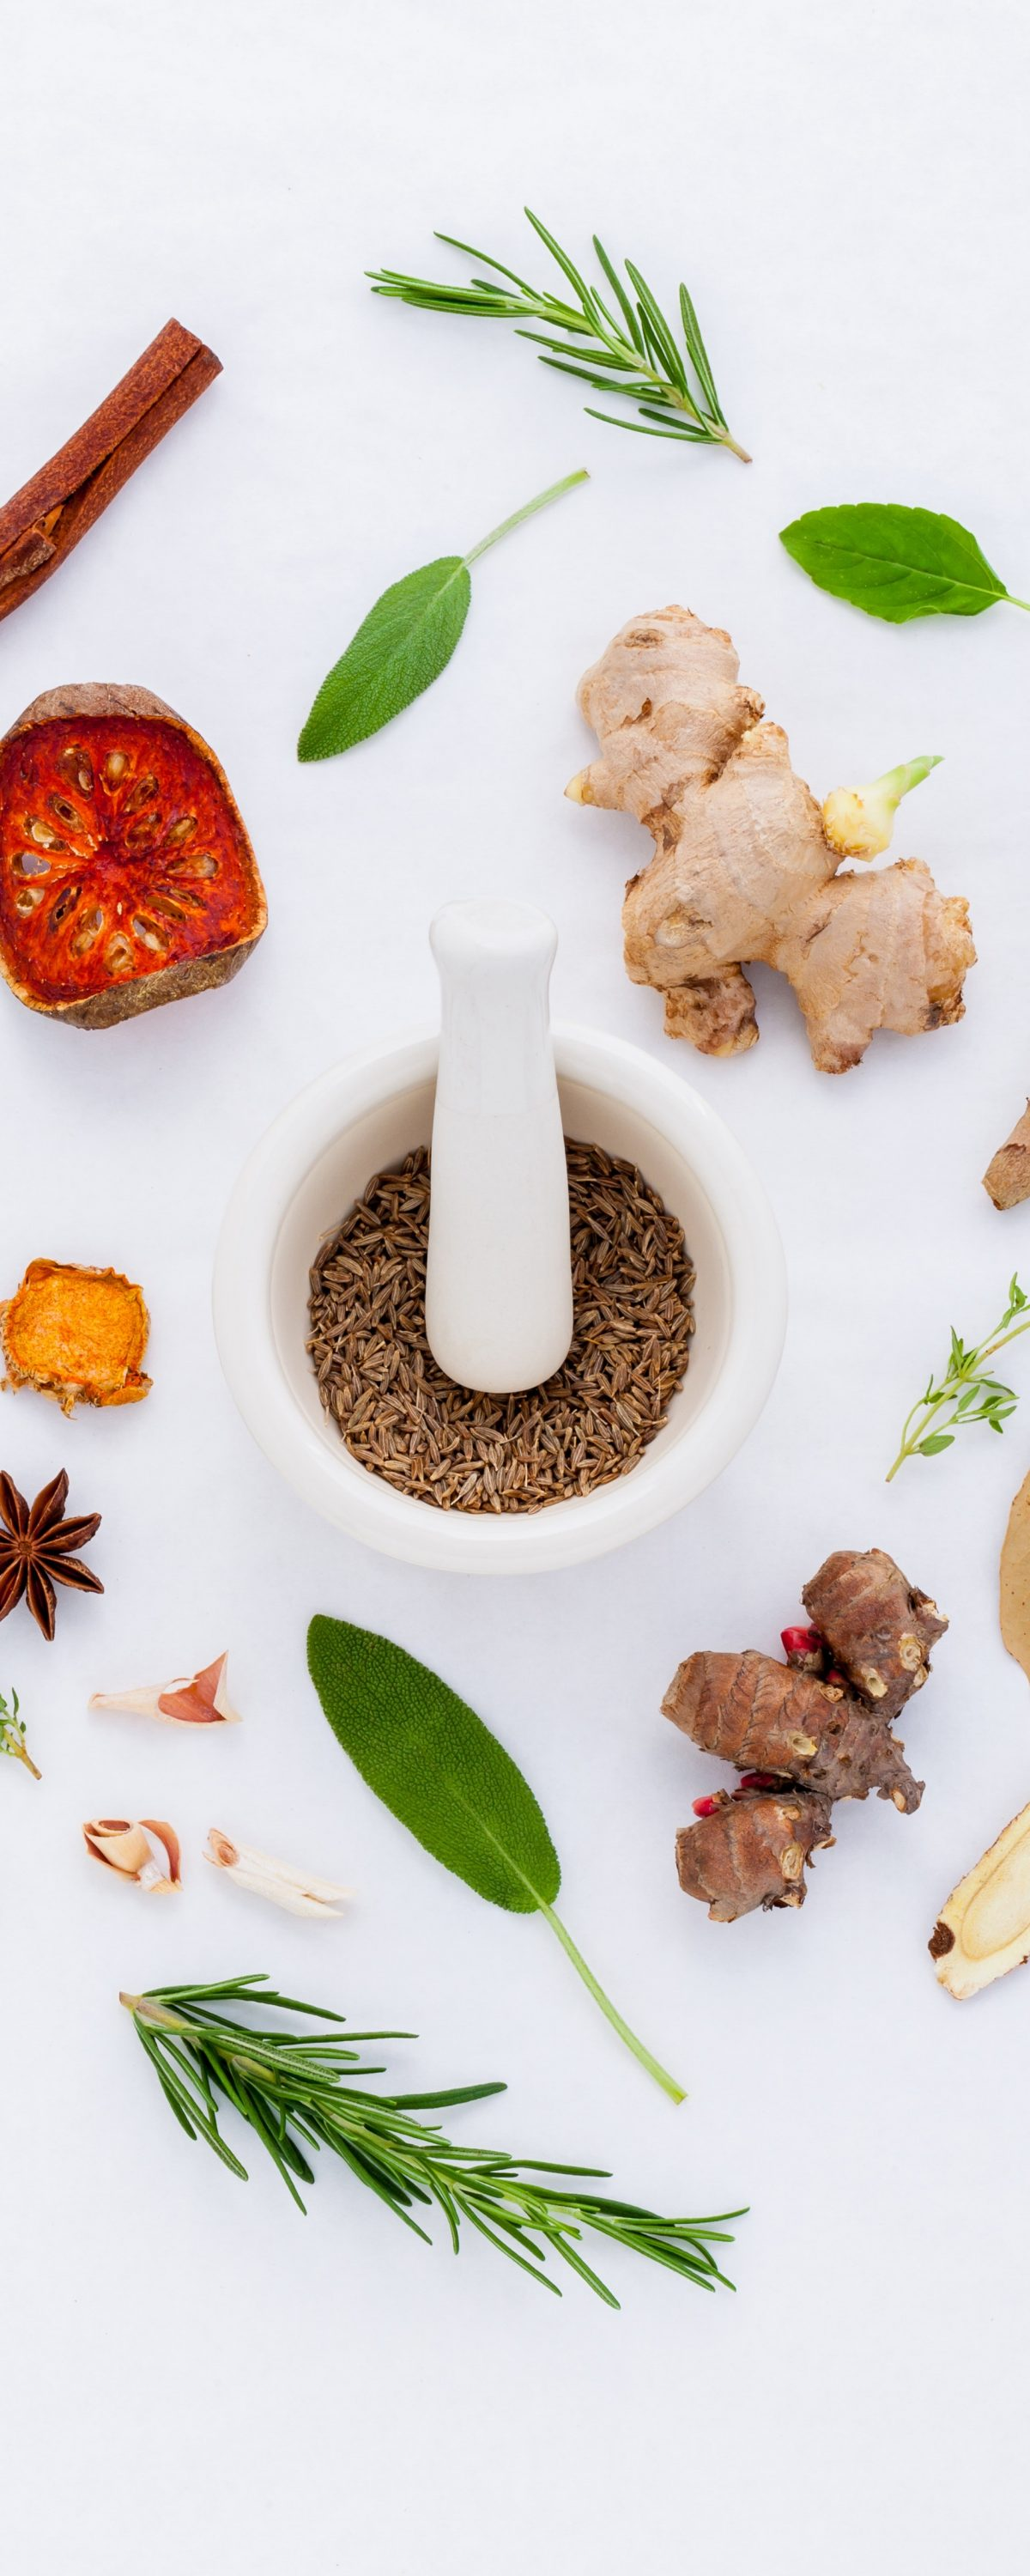 various whole spices arranged around mortar and pestle